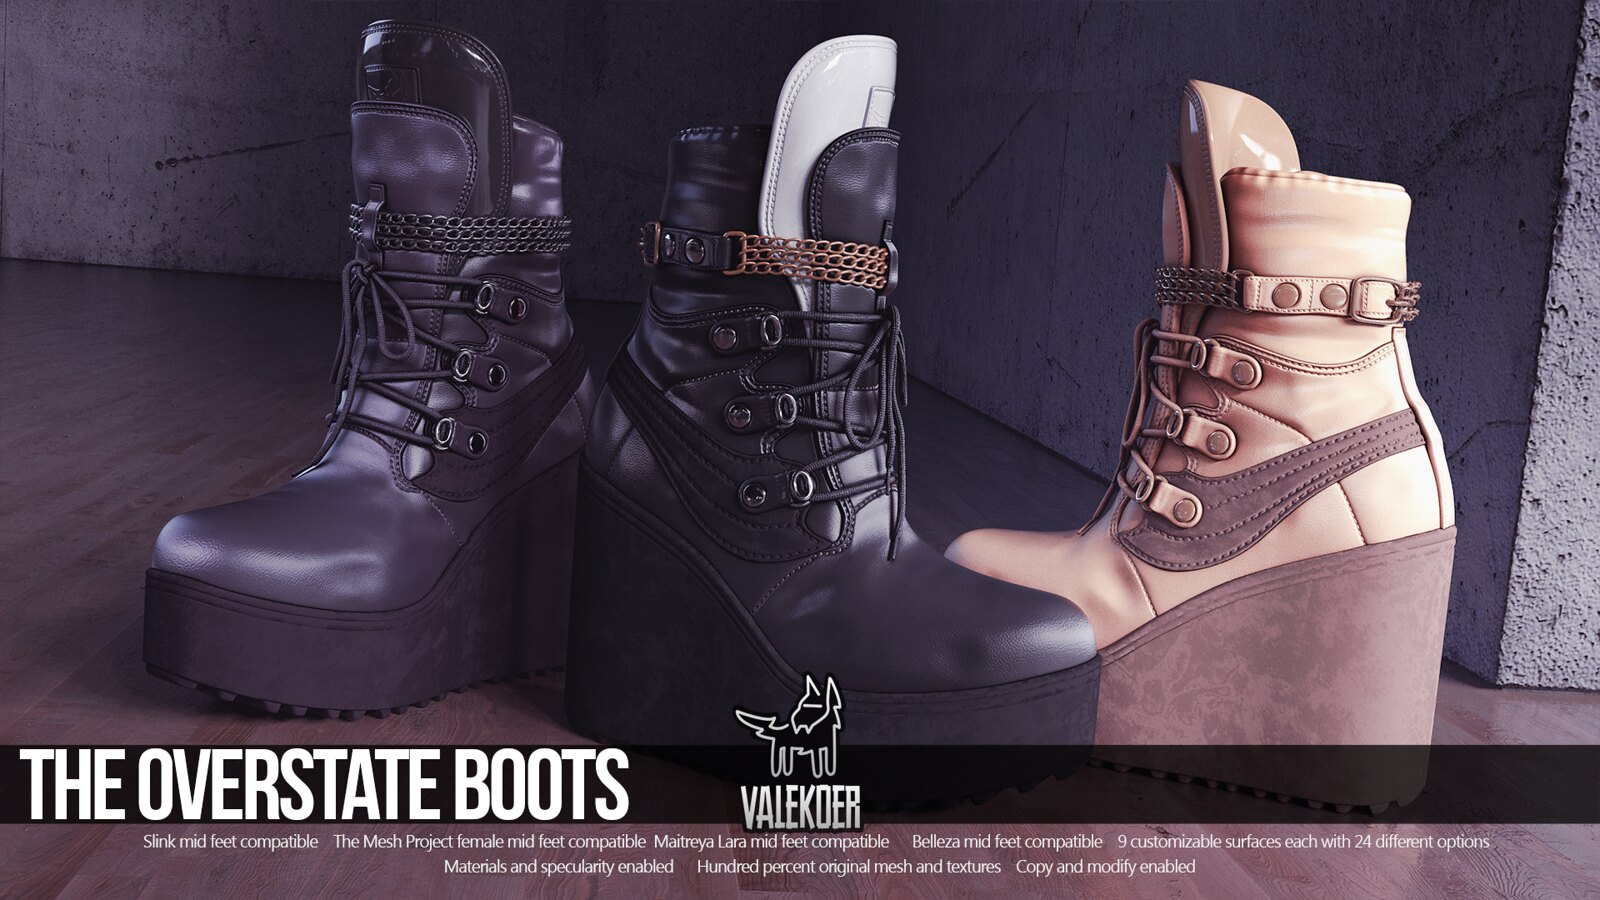 [VALE KOER] OVERSTATE BOOTS